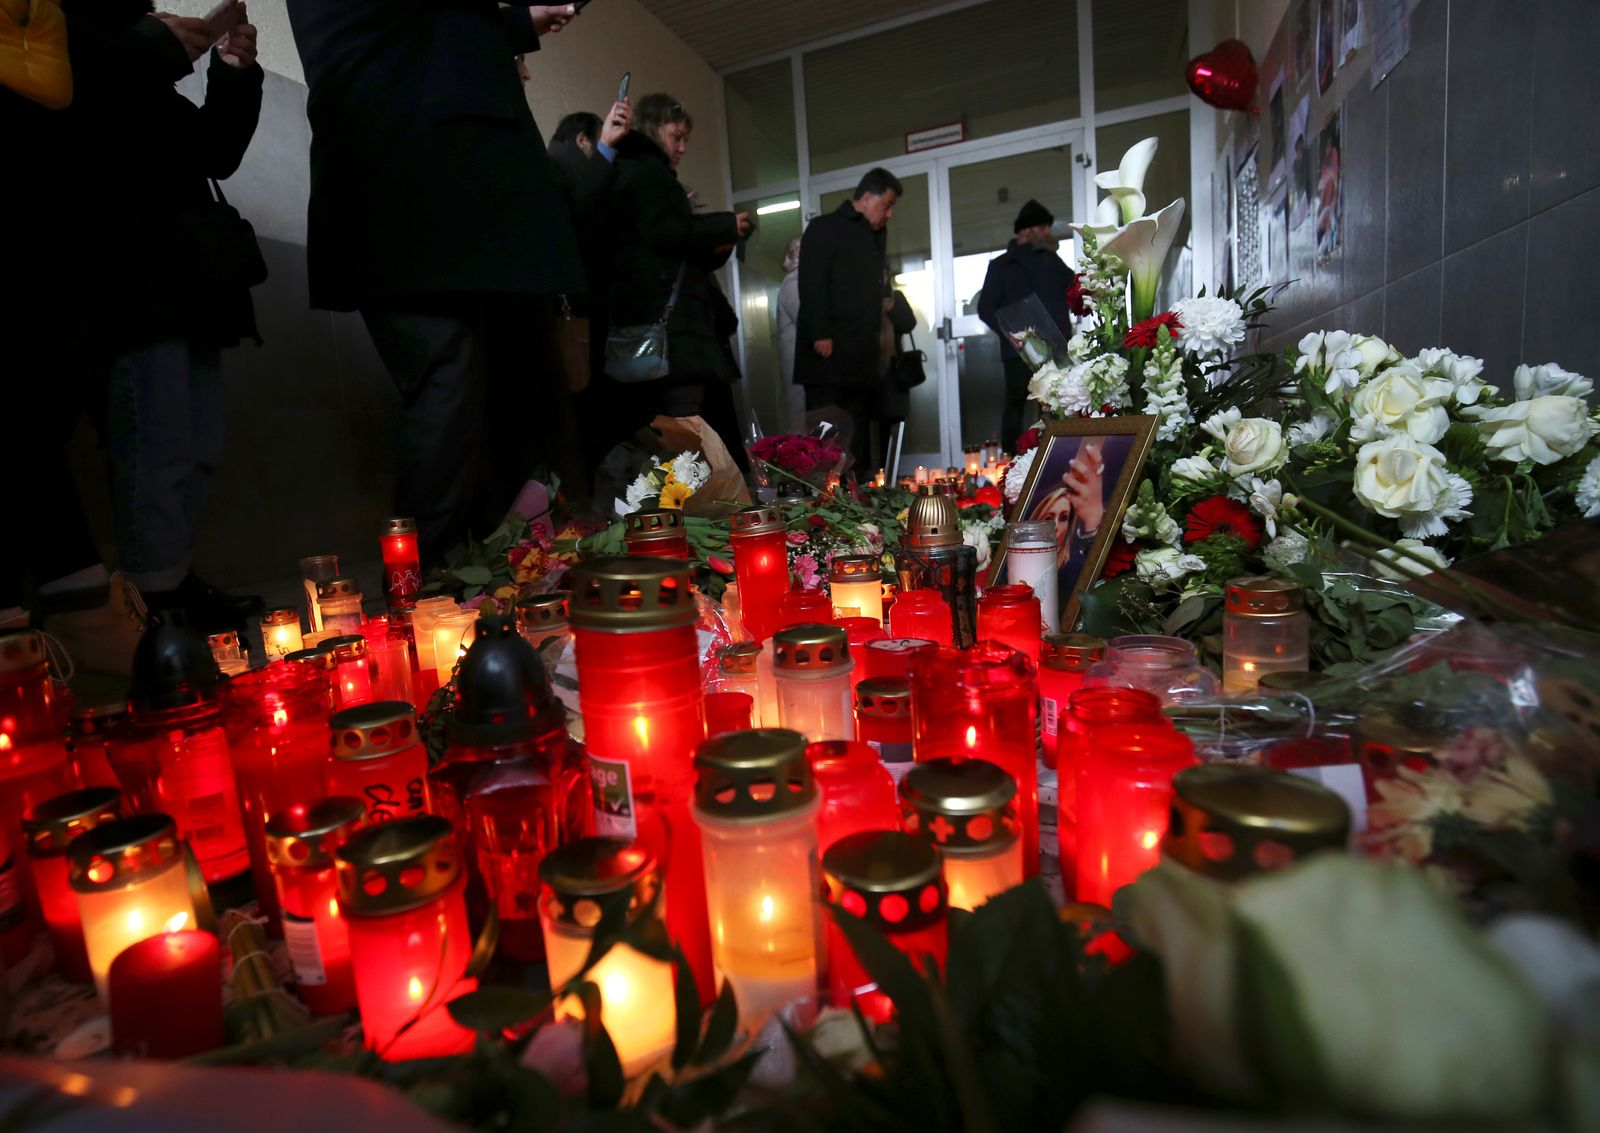 Candles and flowers for the victims of a recent shooting are placed outside a crime scene in Hanau